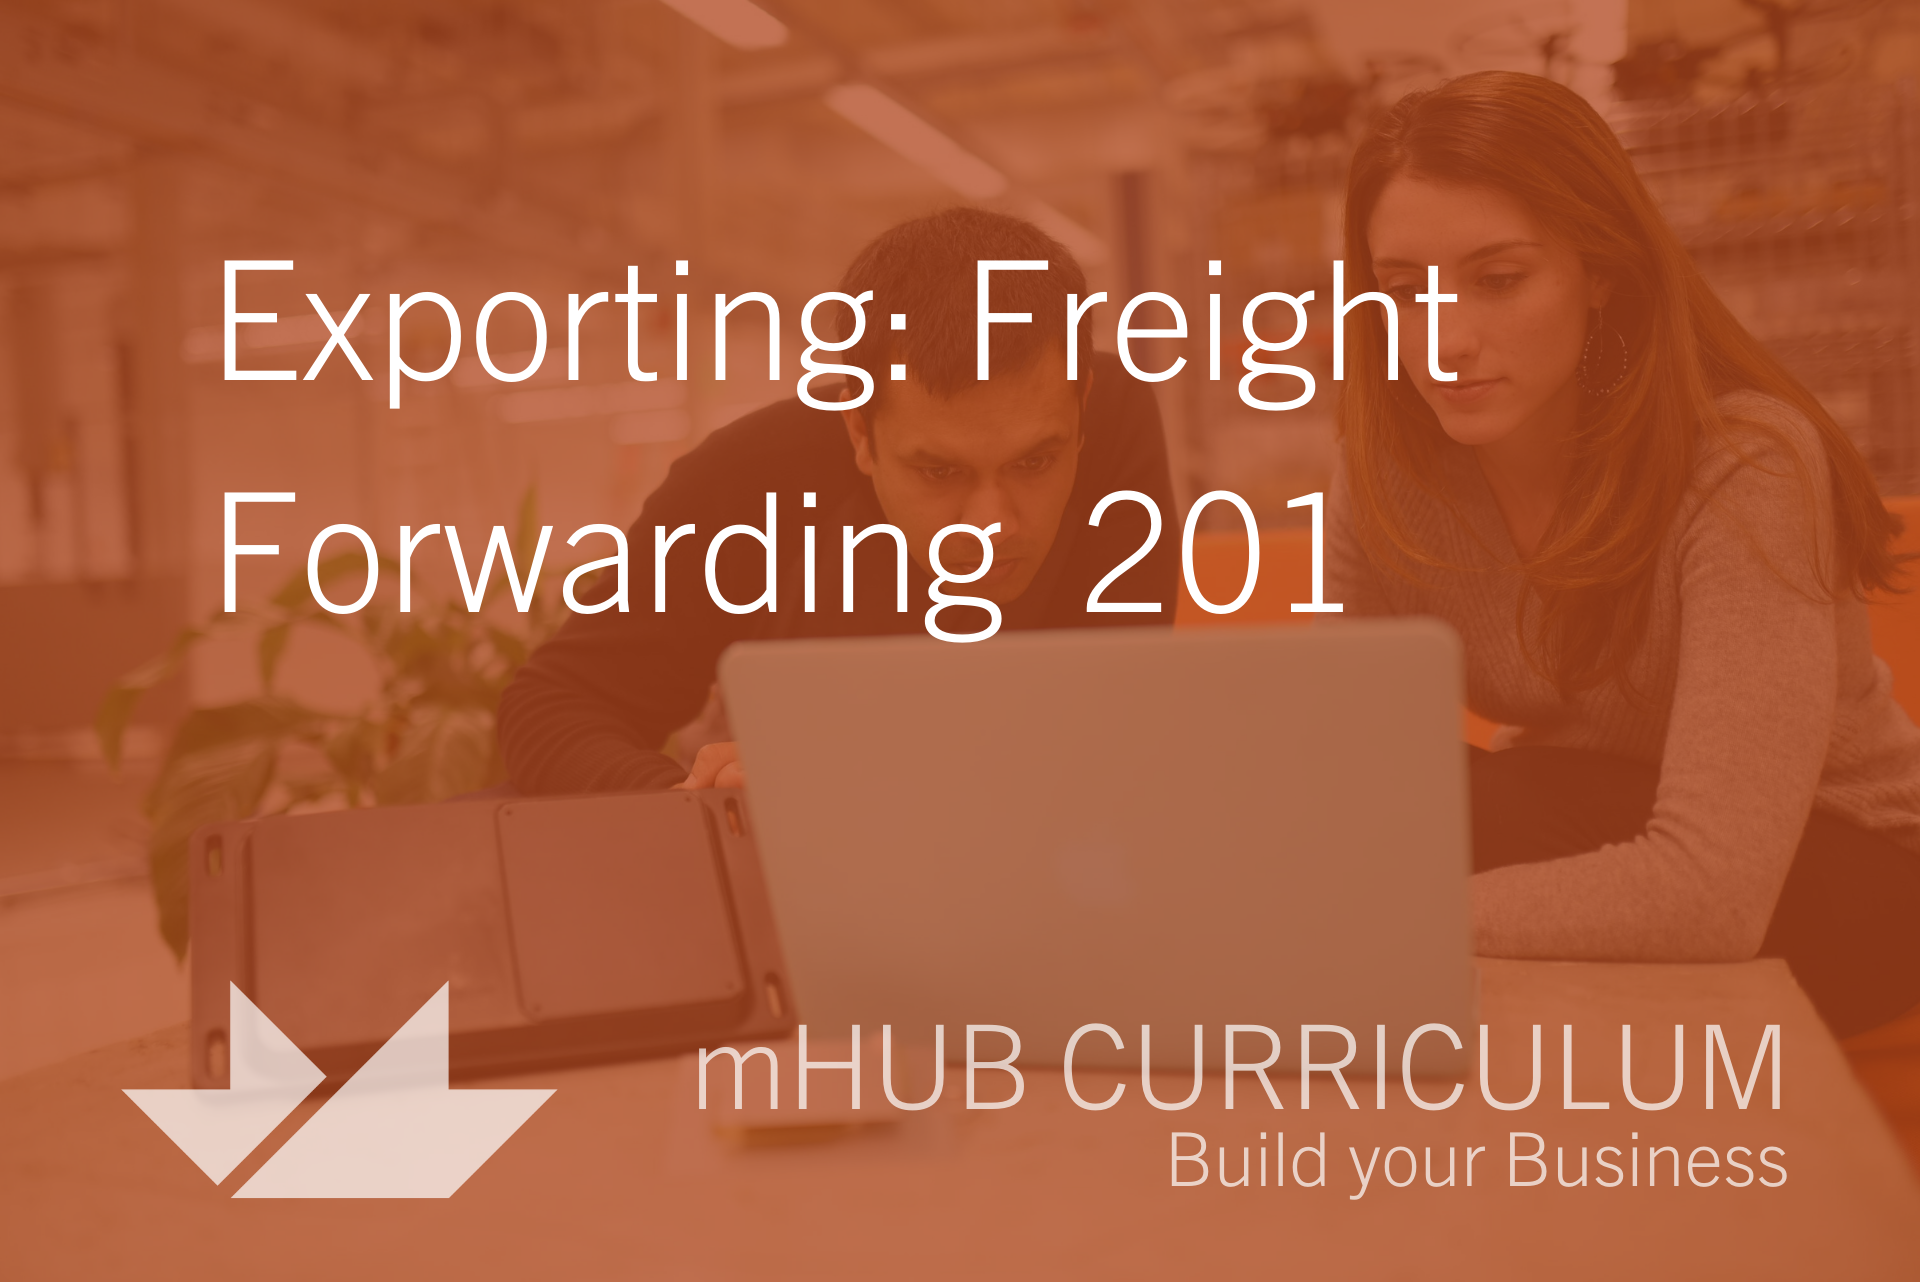 Exporting: Freight Forwarding 201